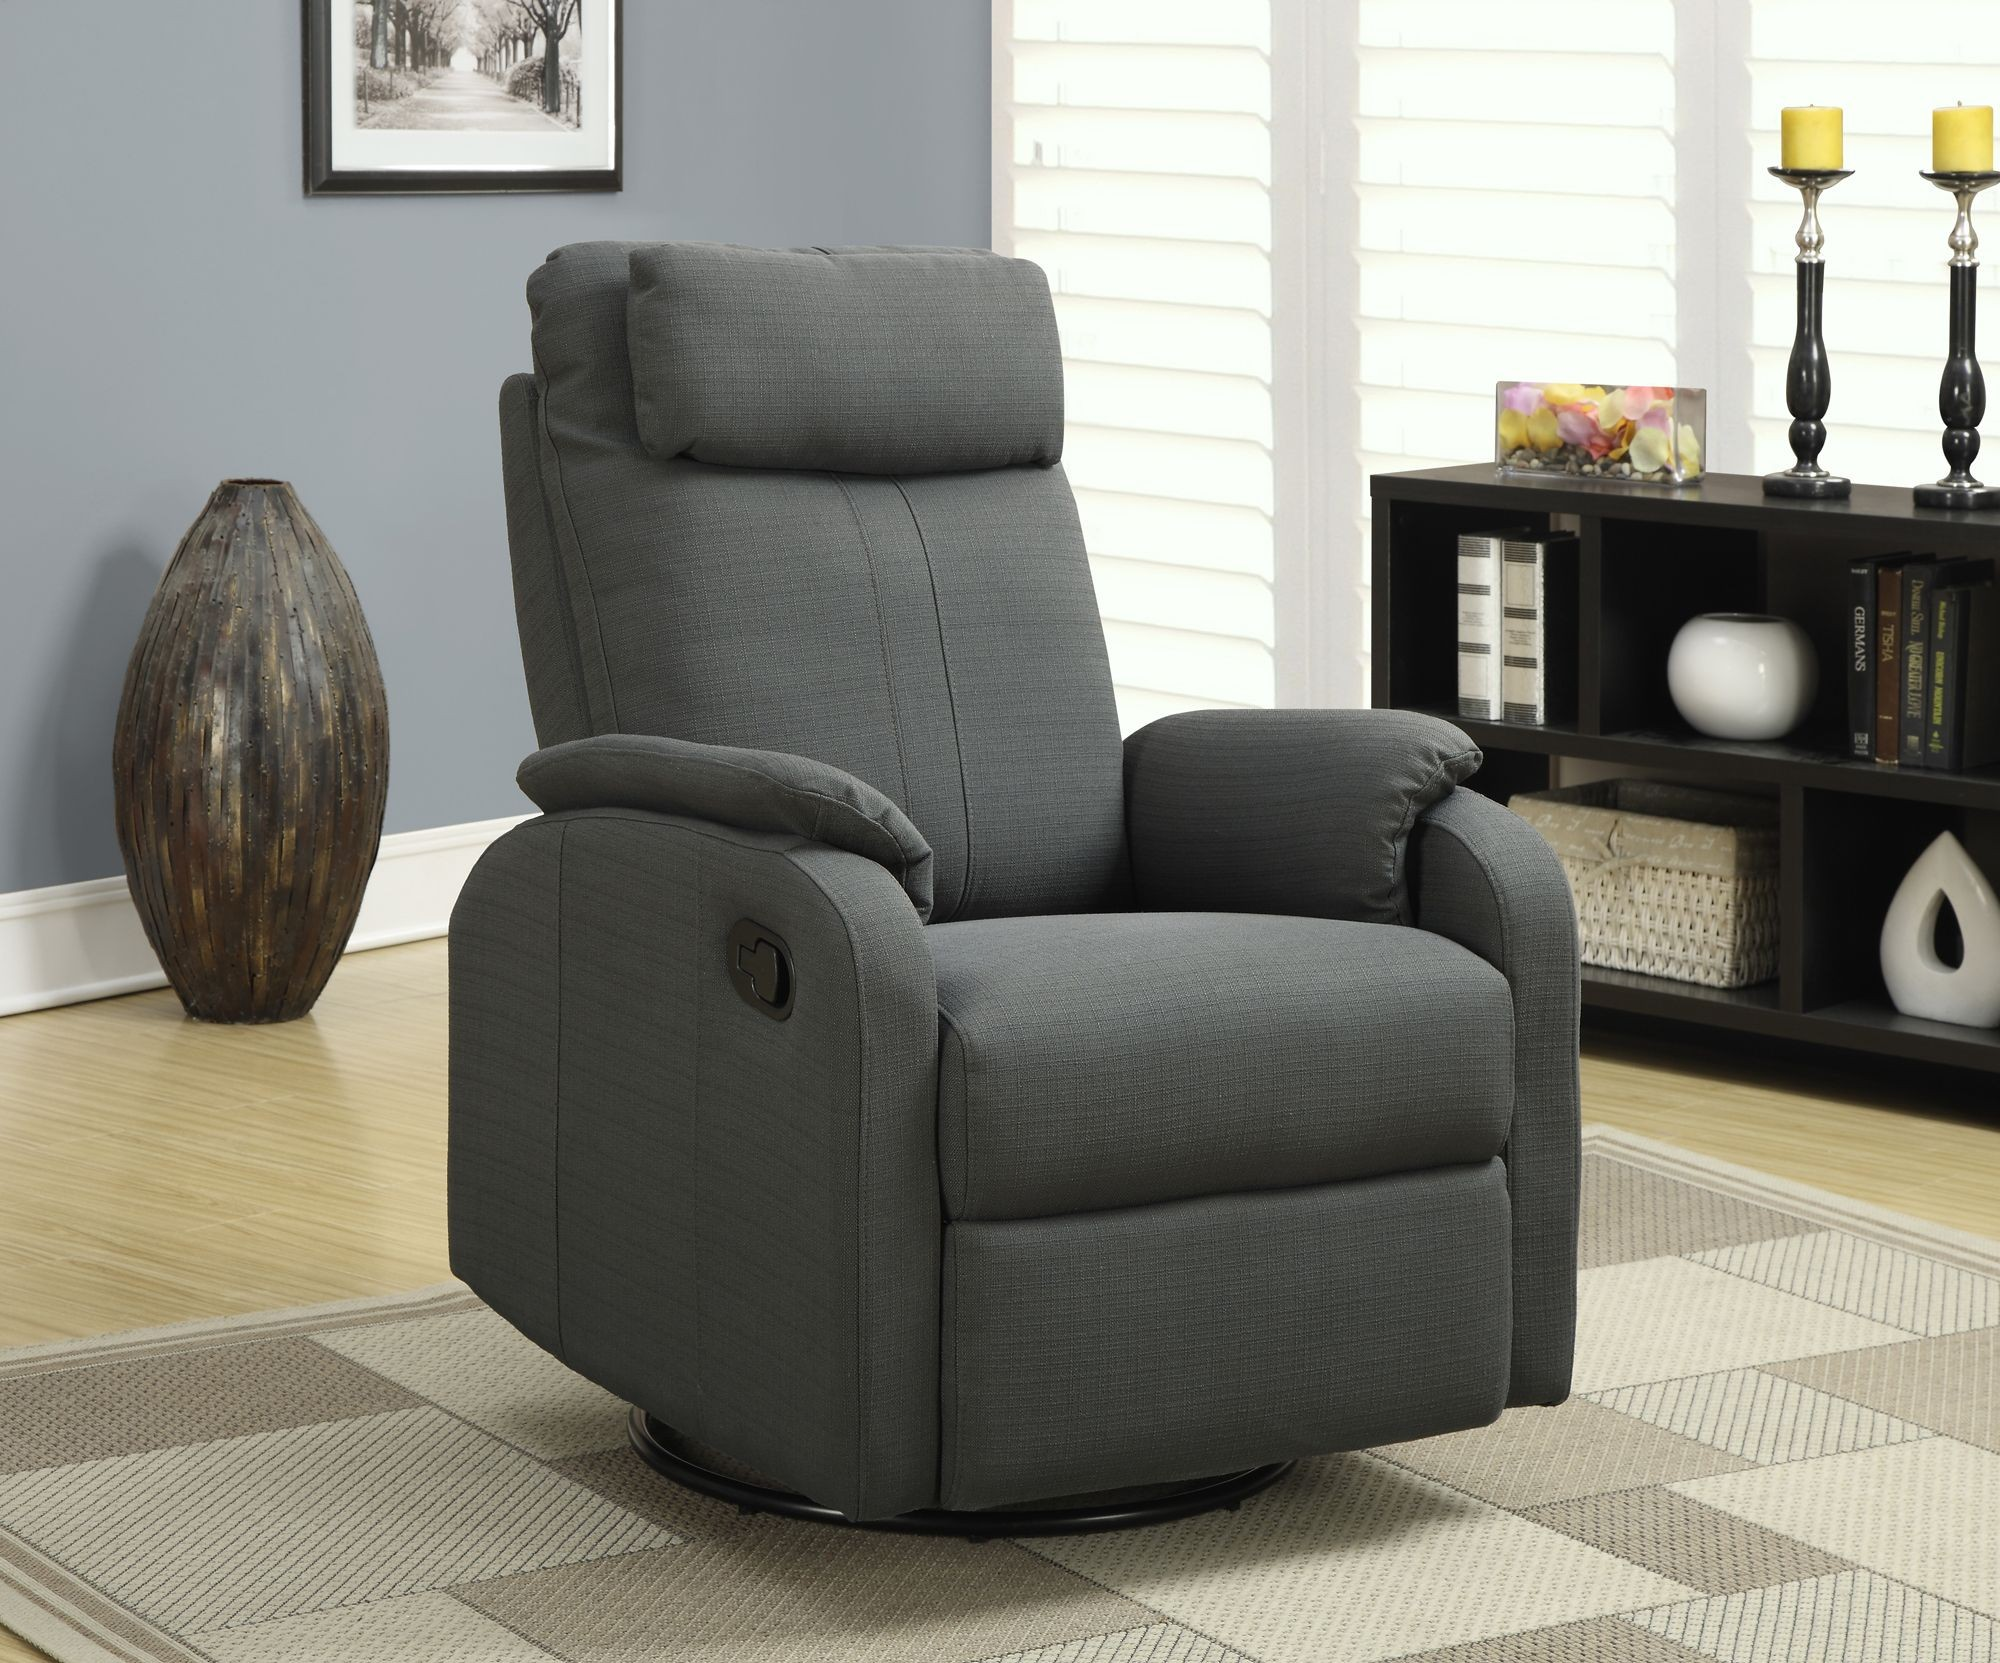 Charcoal Gray Linen Fabric Swivel Rocker Recliner From